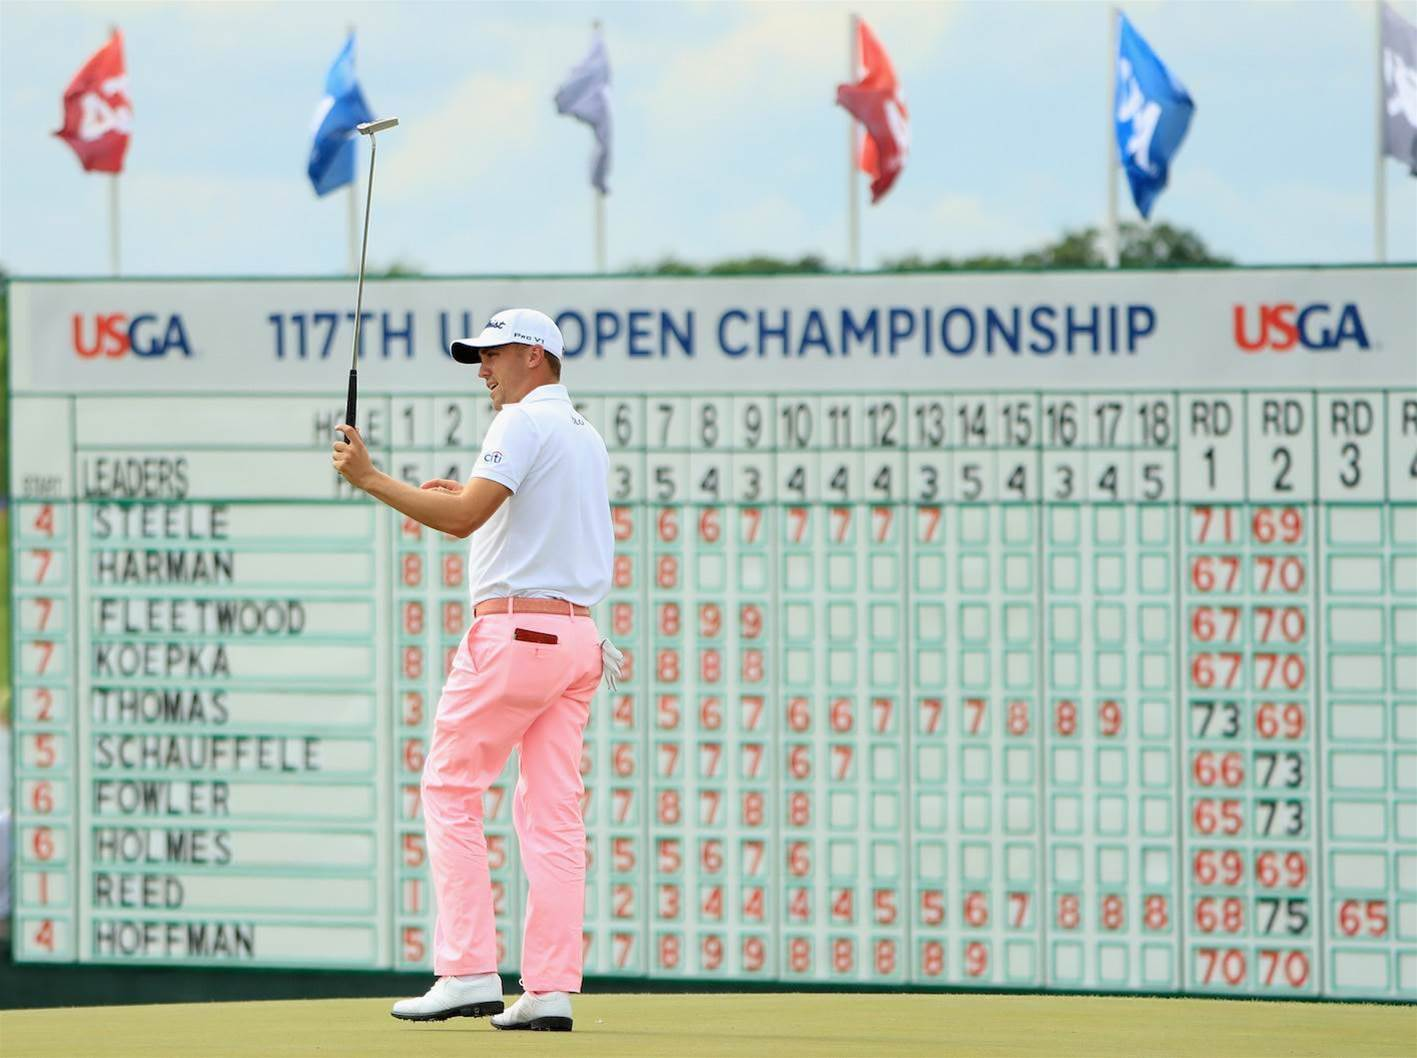 U.S OPEN: Best images from round 3